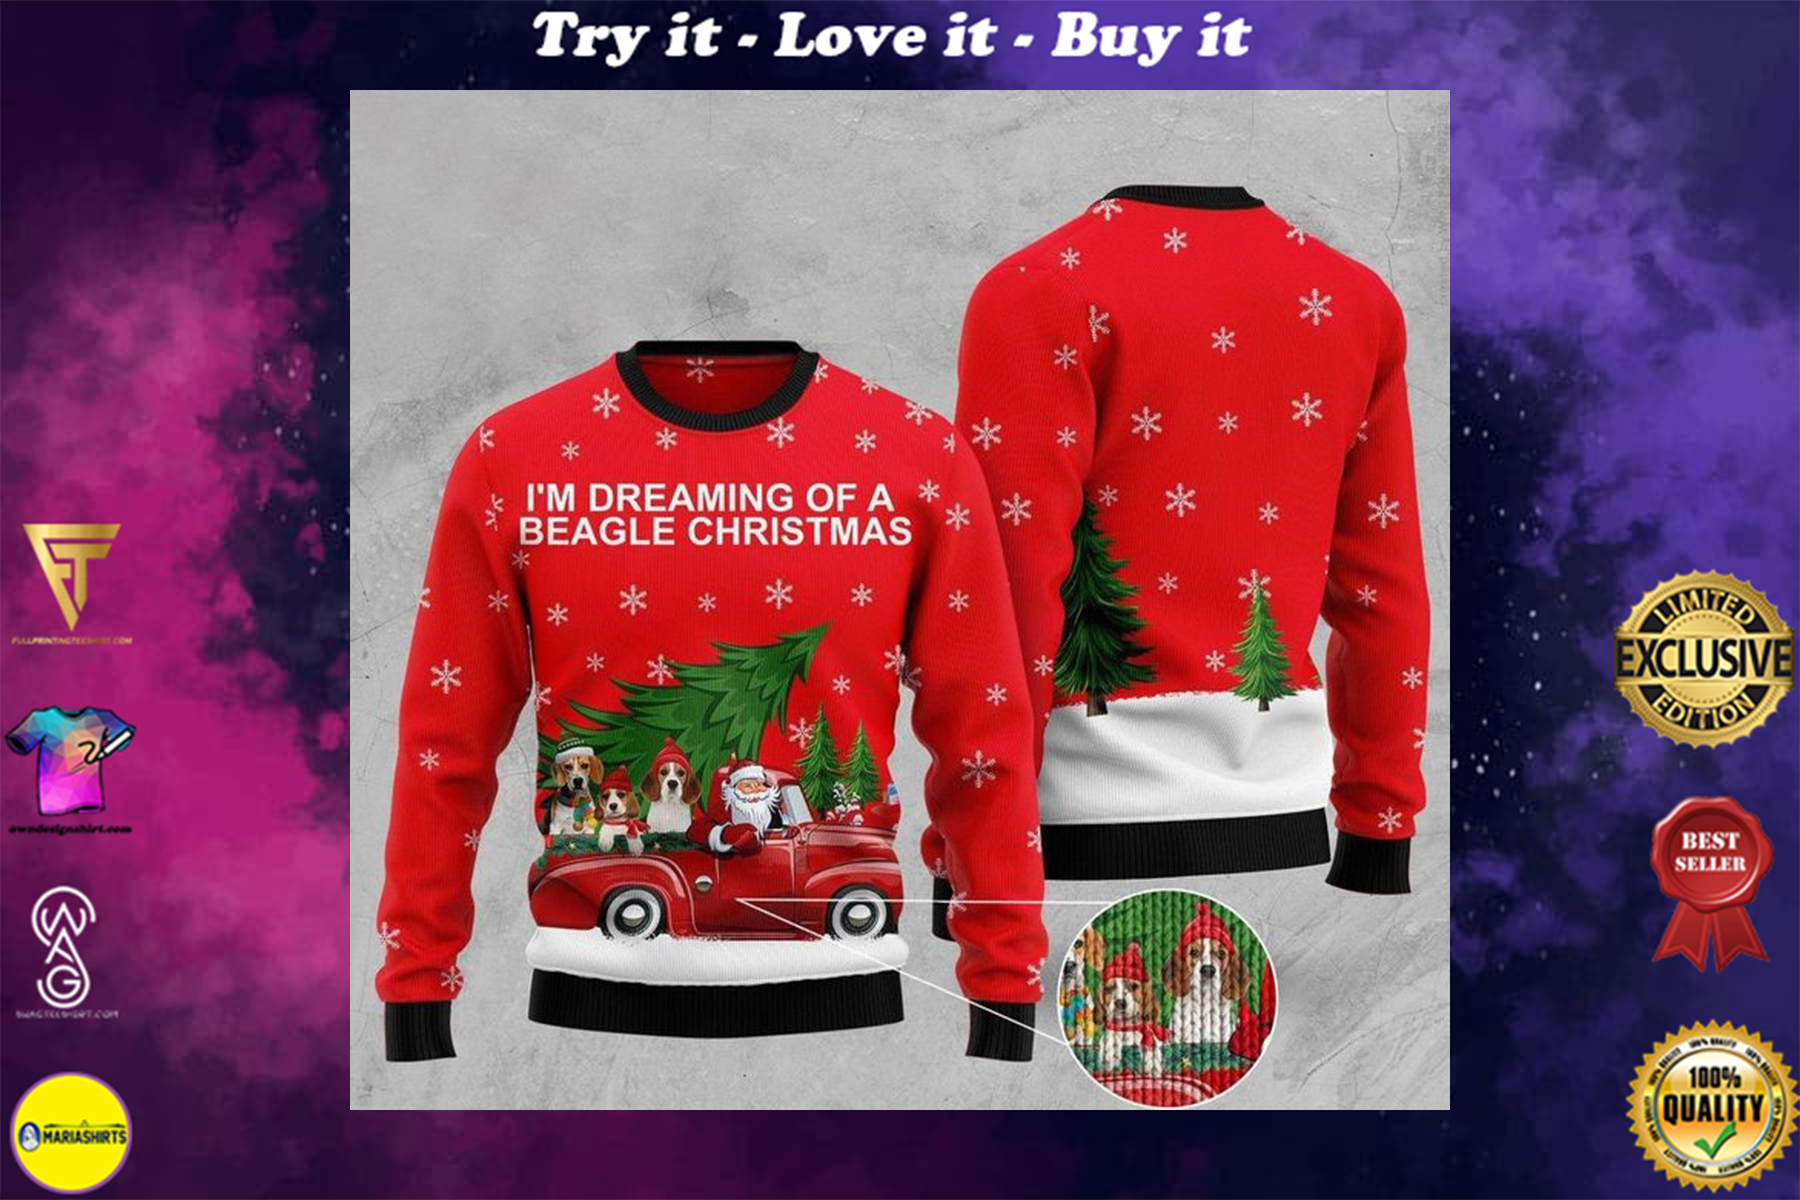 [highest selling] im dreaming of a beagle christmas full printing ugly sweater - maria